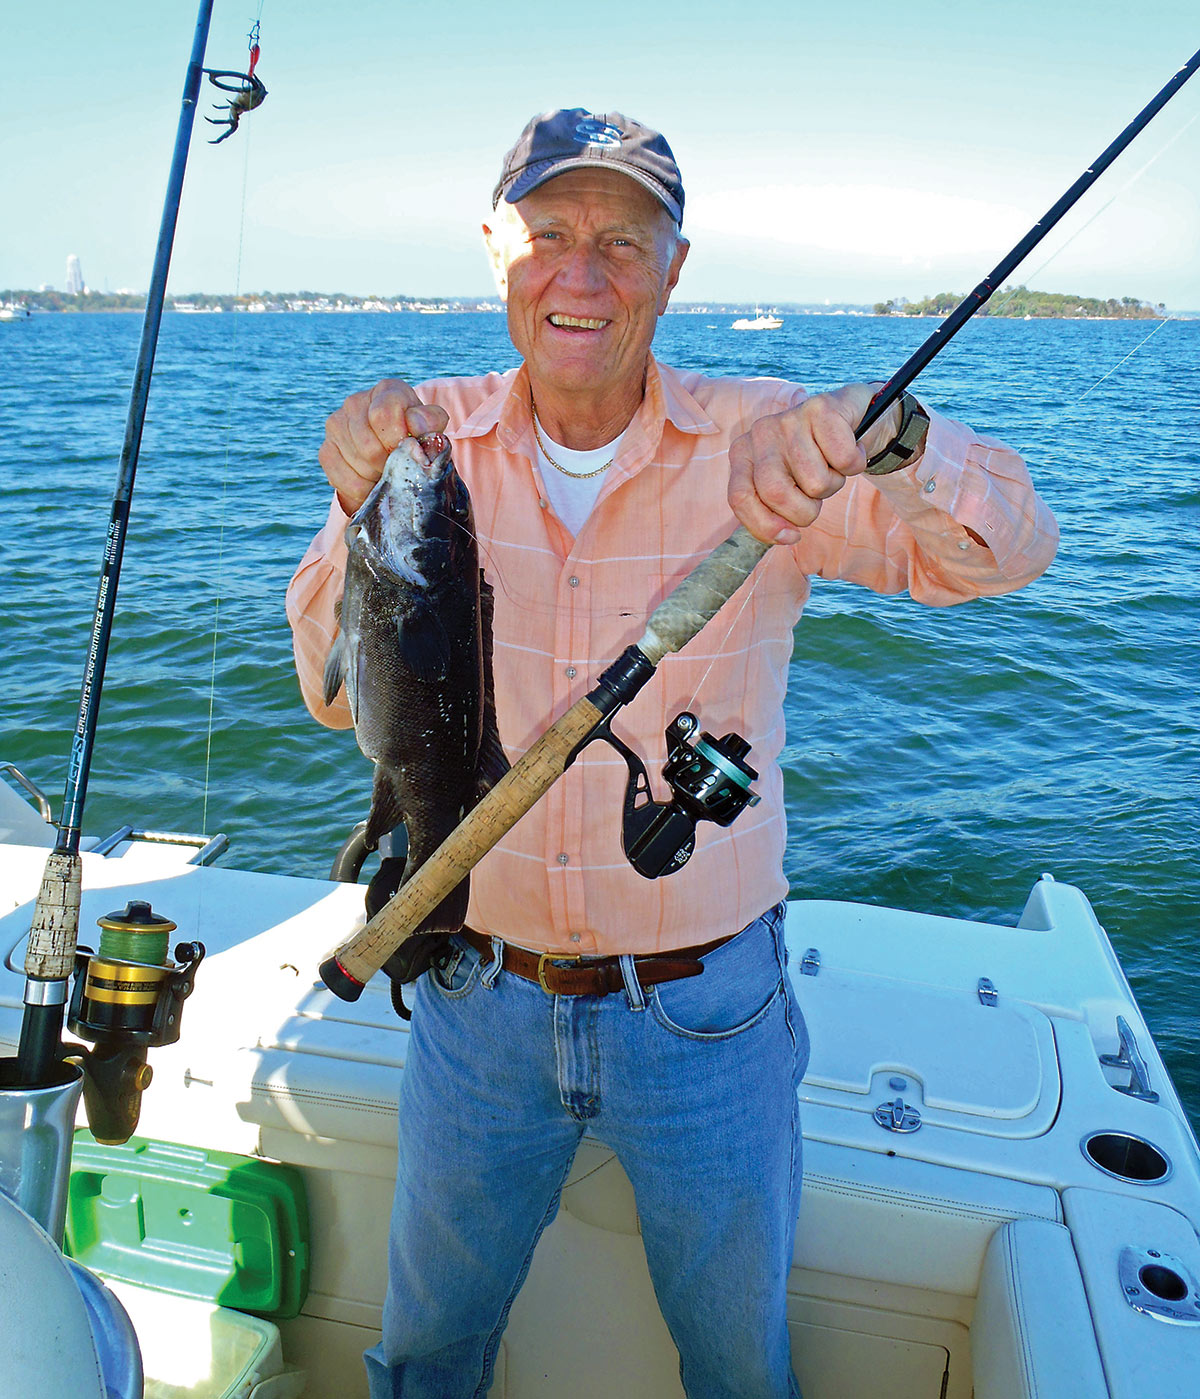 Man holding a fishing rod and a black fish in a boat